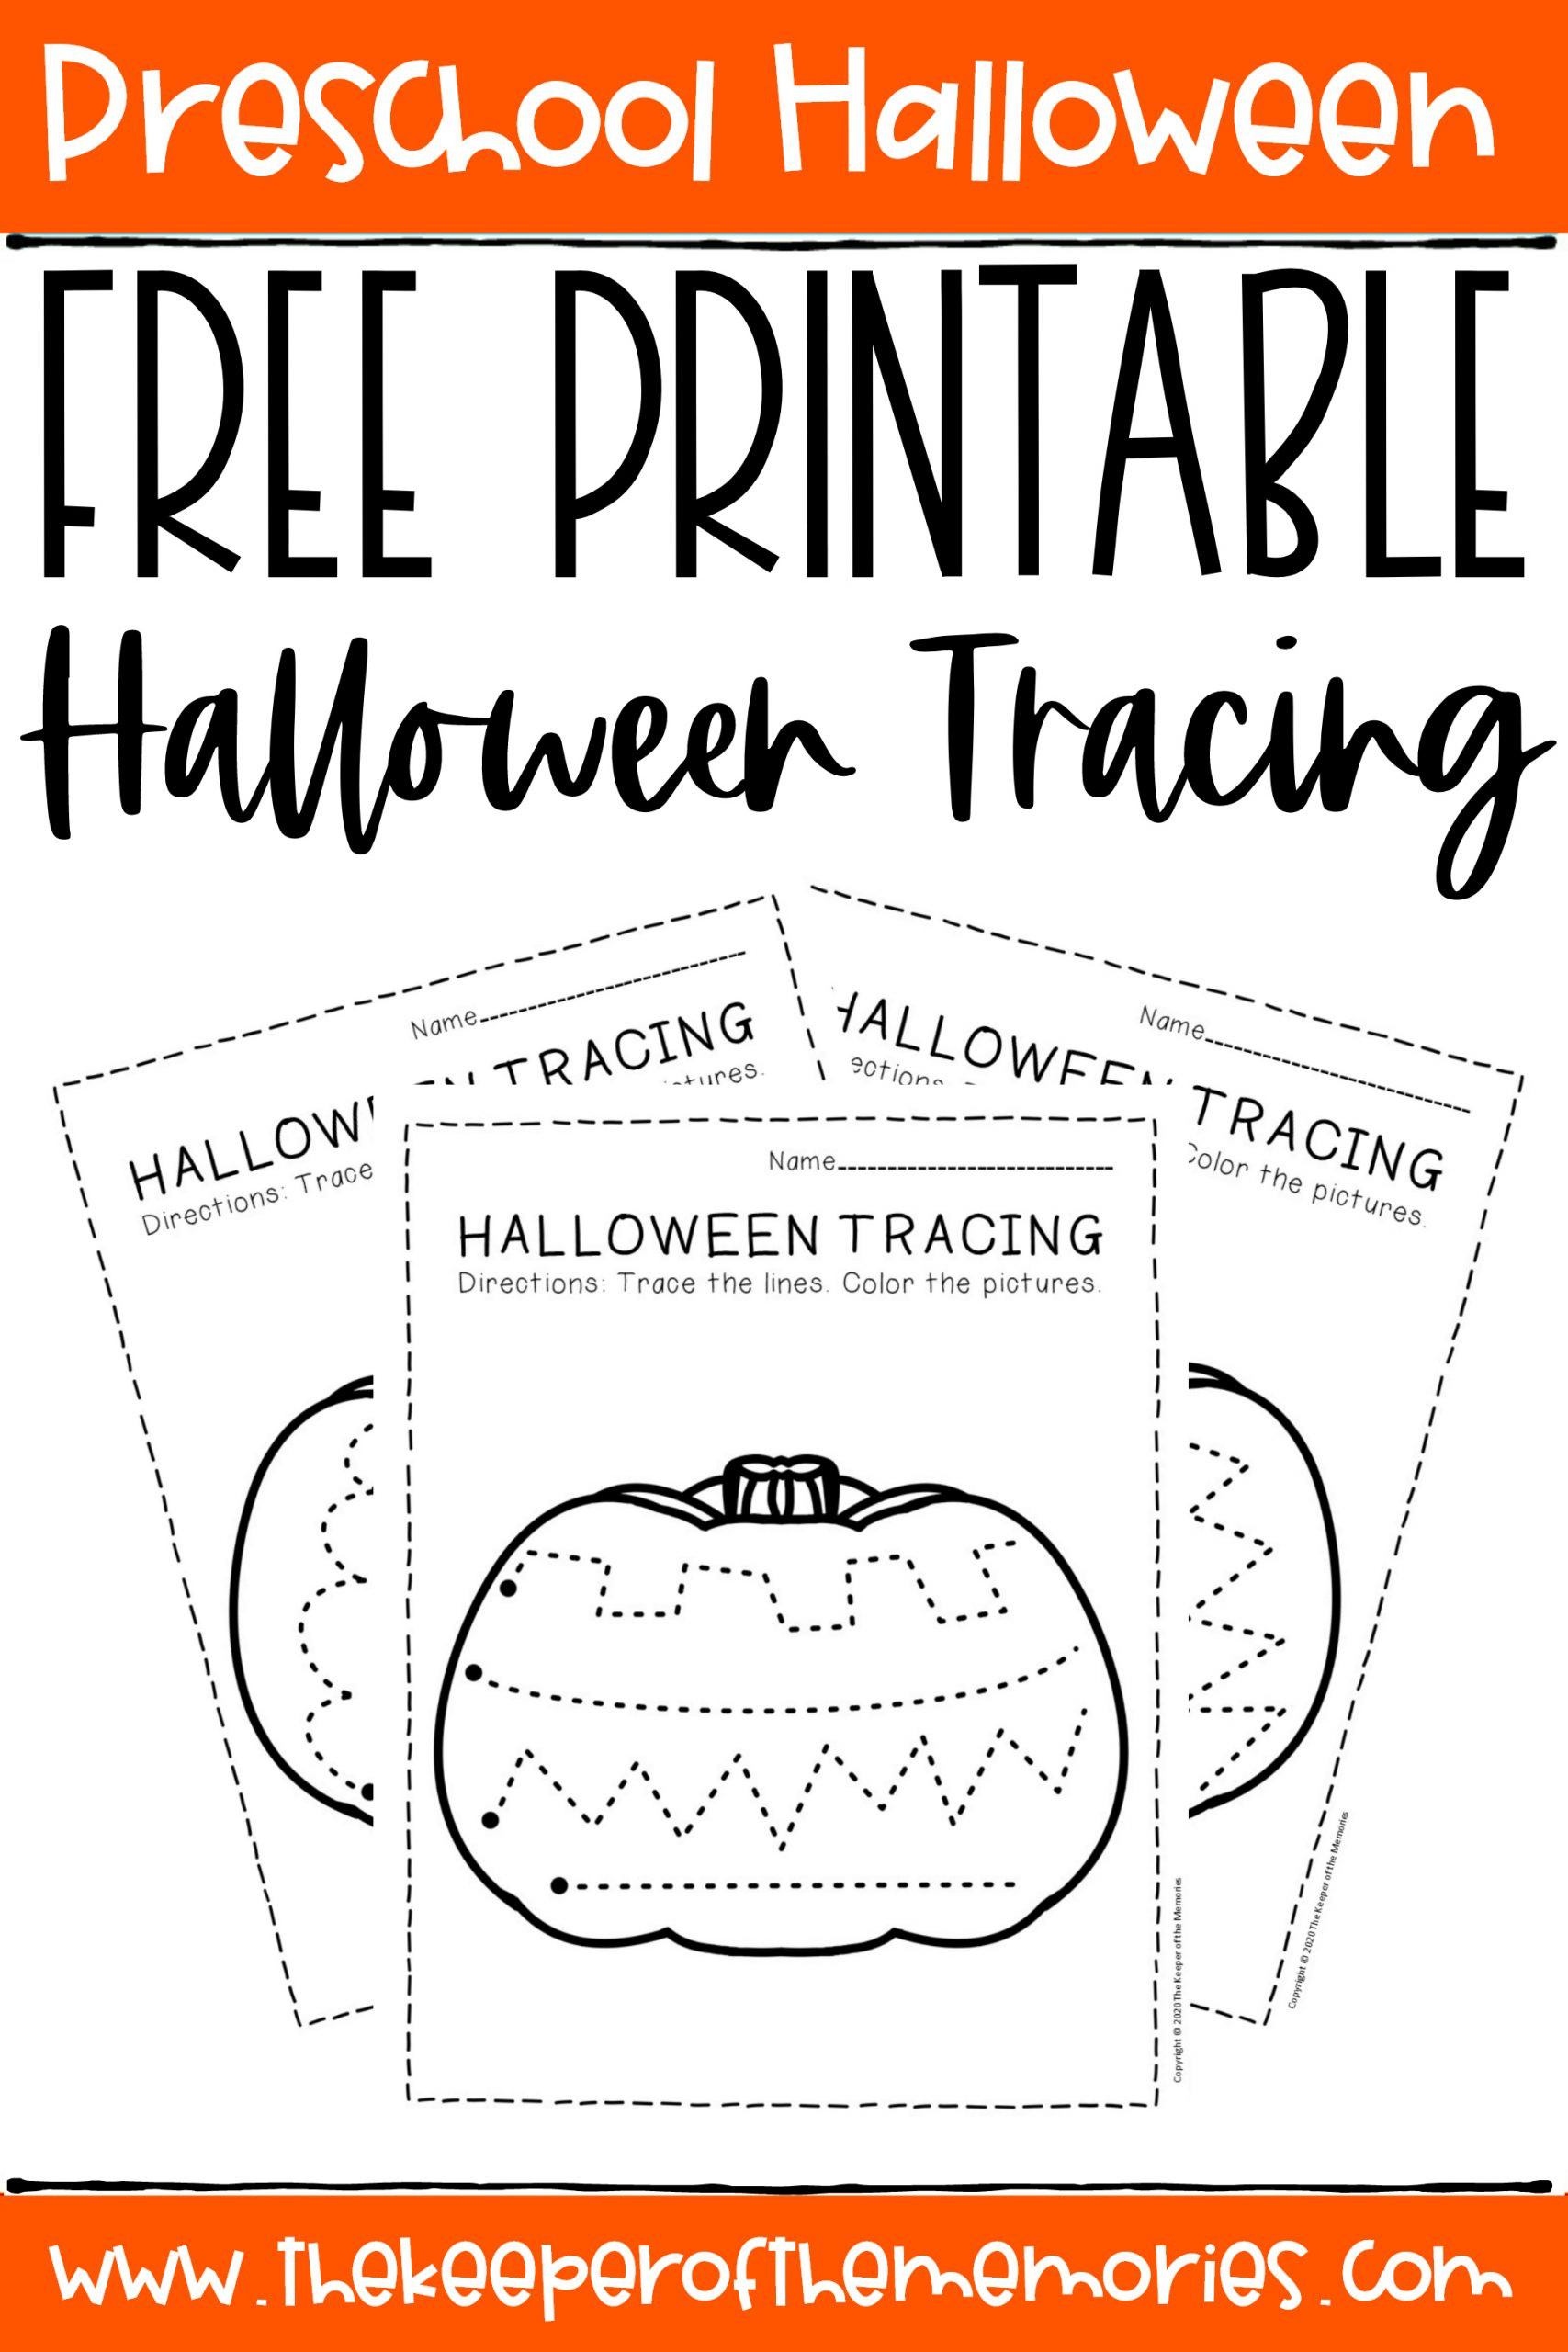 Preschool Halloween Worksheets Free Free Printable Tracing Halloween Preschool Worksheets the